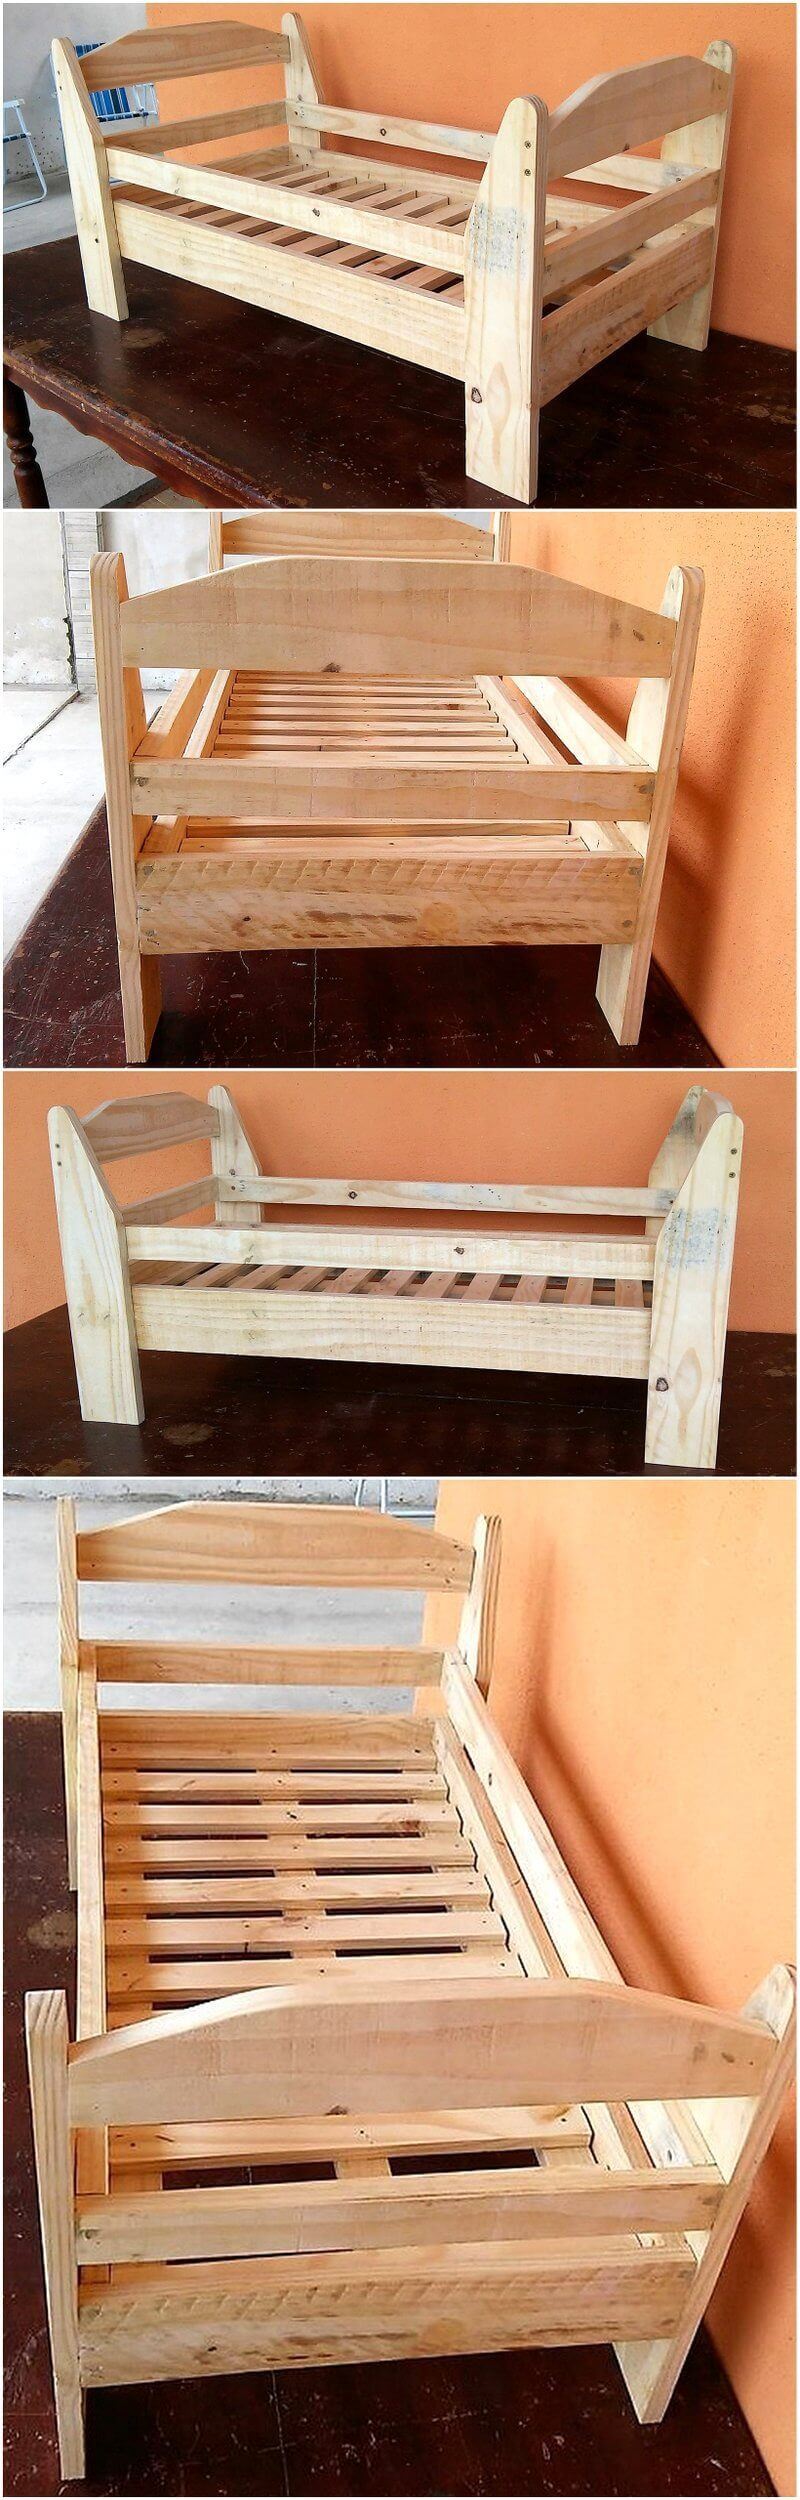 recycled pallets baby bed